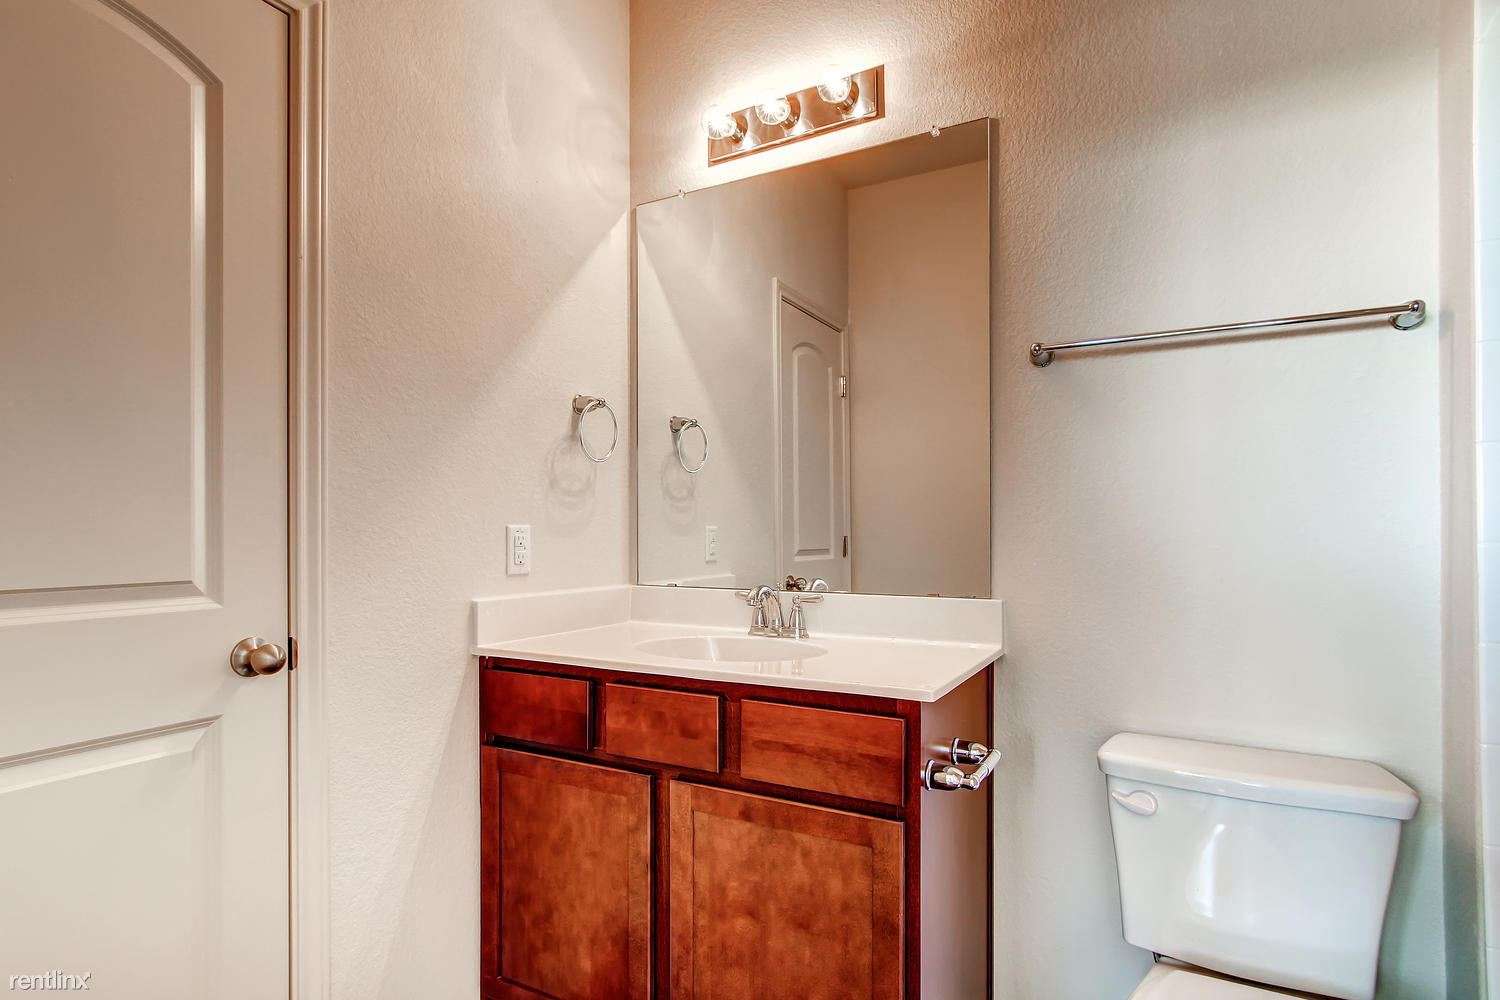 DoubleEagleTownhomes - 2 Bedroom - large-009-Double Eagle Townhomes 1  2-1500x1000-72dpi